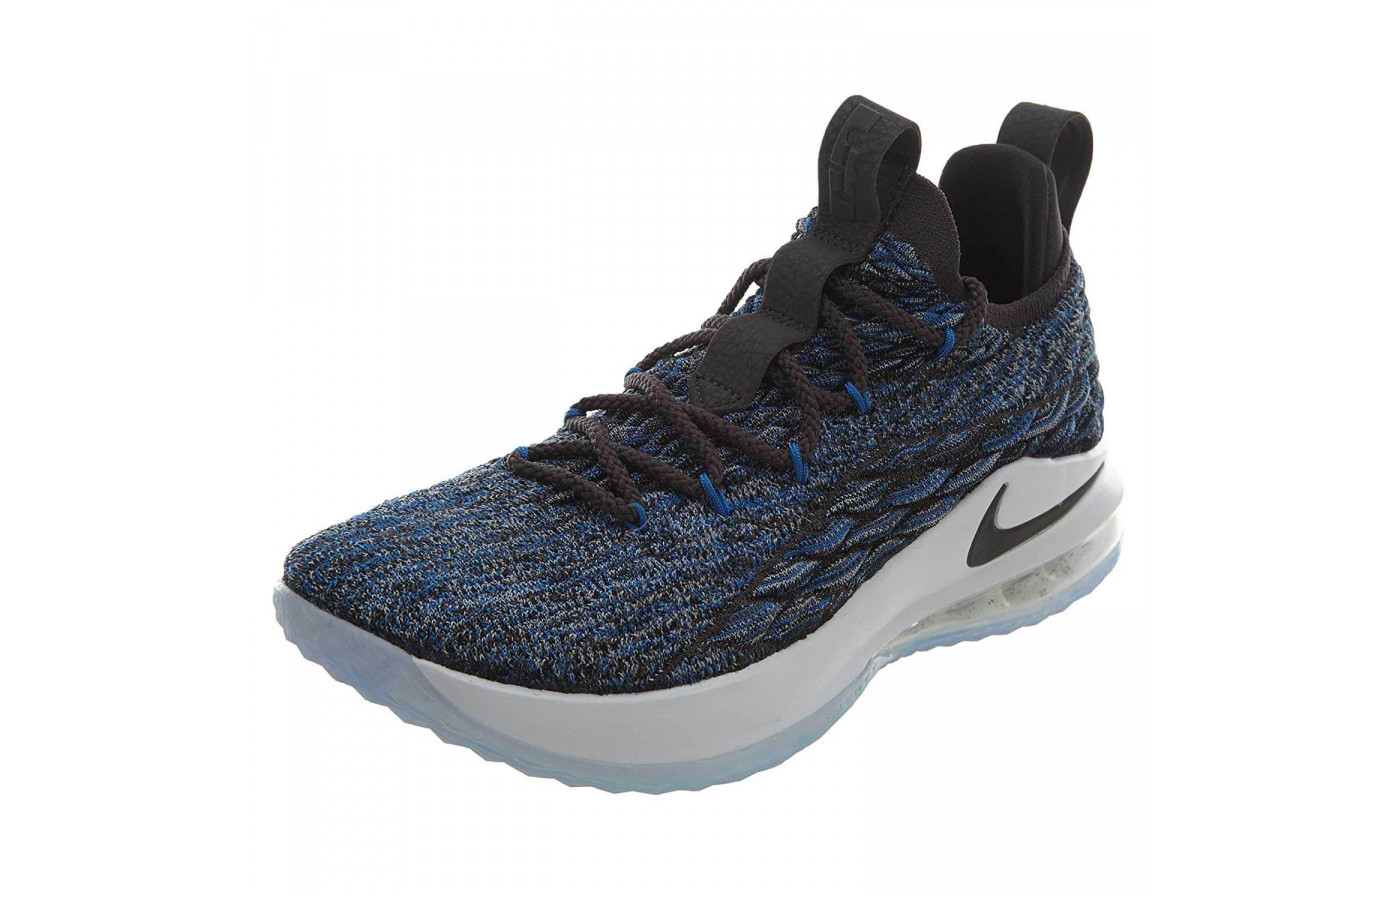 445c3ea8f02 The Lebron 15 Low is constructed with a Battleknit upper material ...